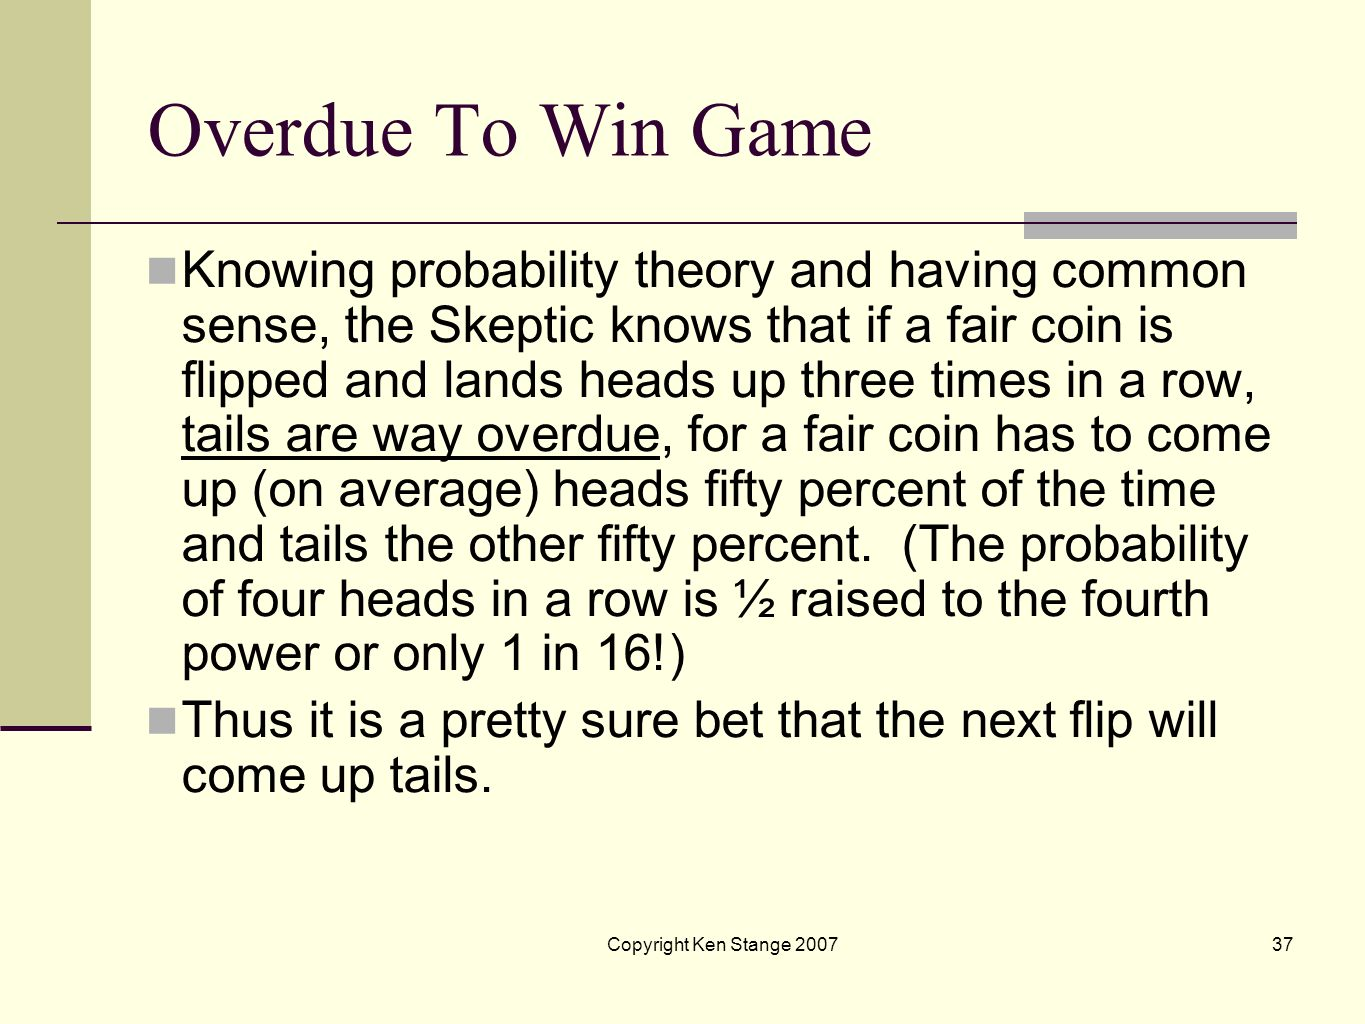 Copyright Ken Stange 200736 5: Overdue To Win Game Okay, is there still a Skeptic willing to agree to take on the Psychic with another little gambling